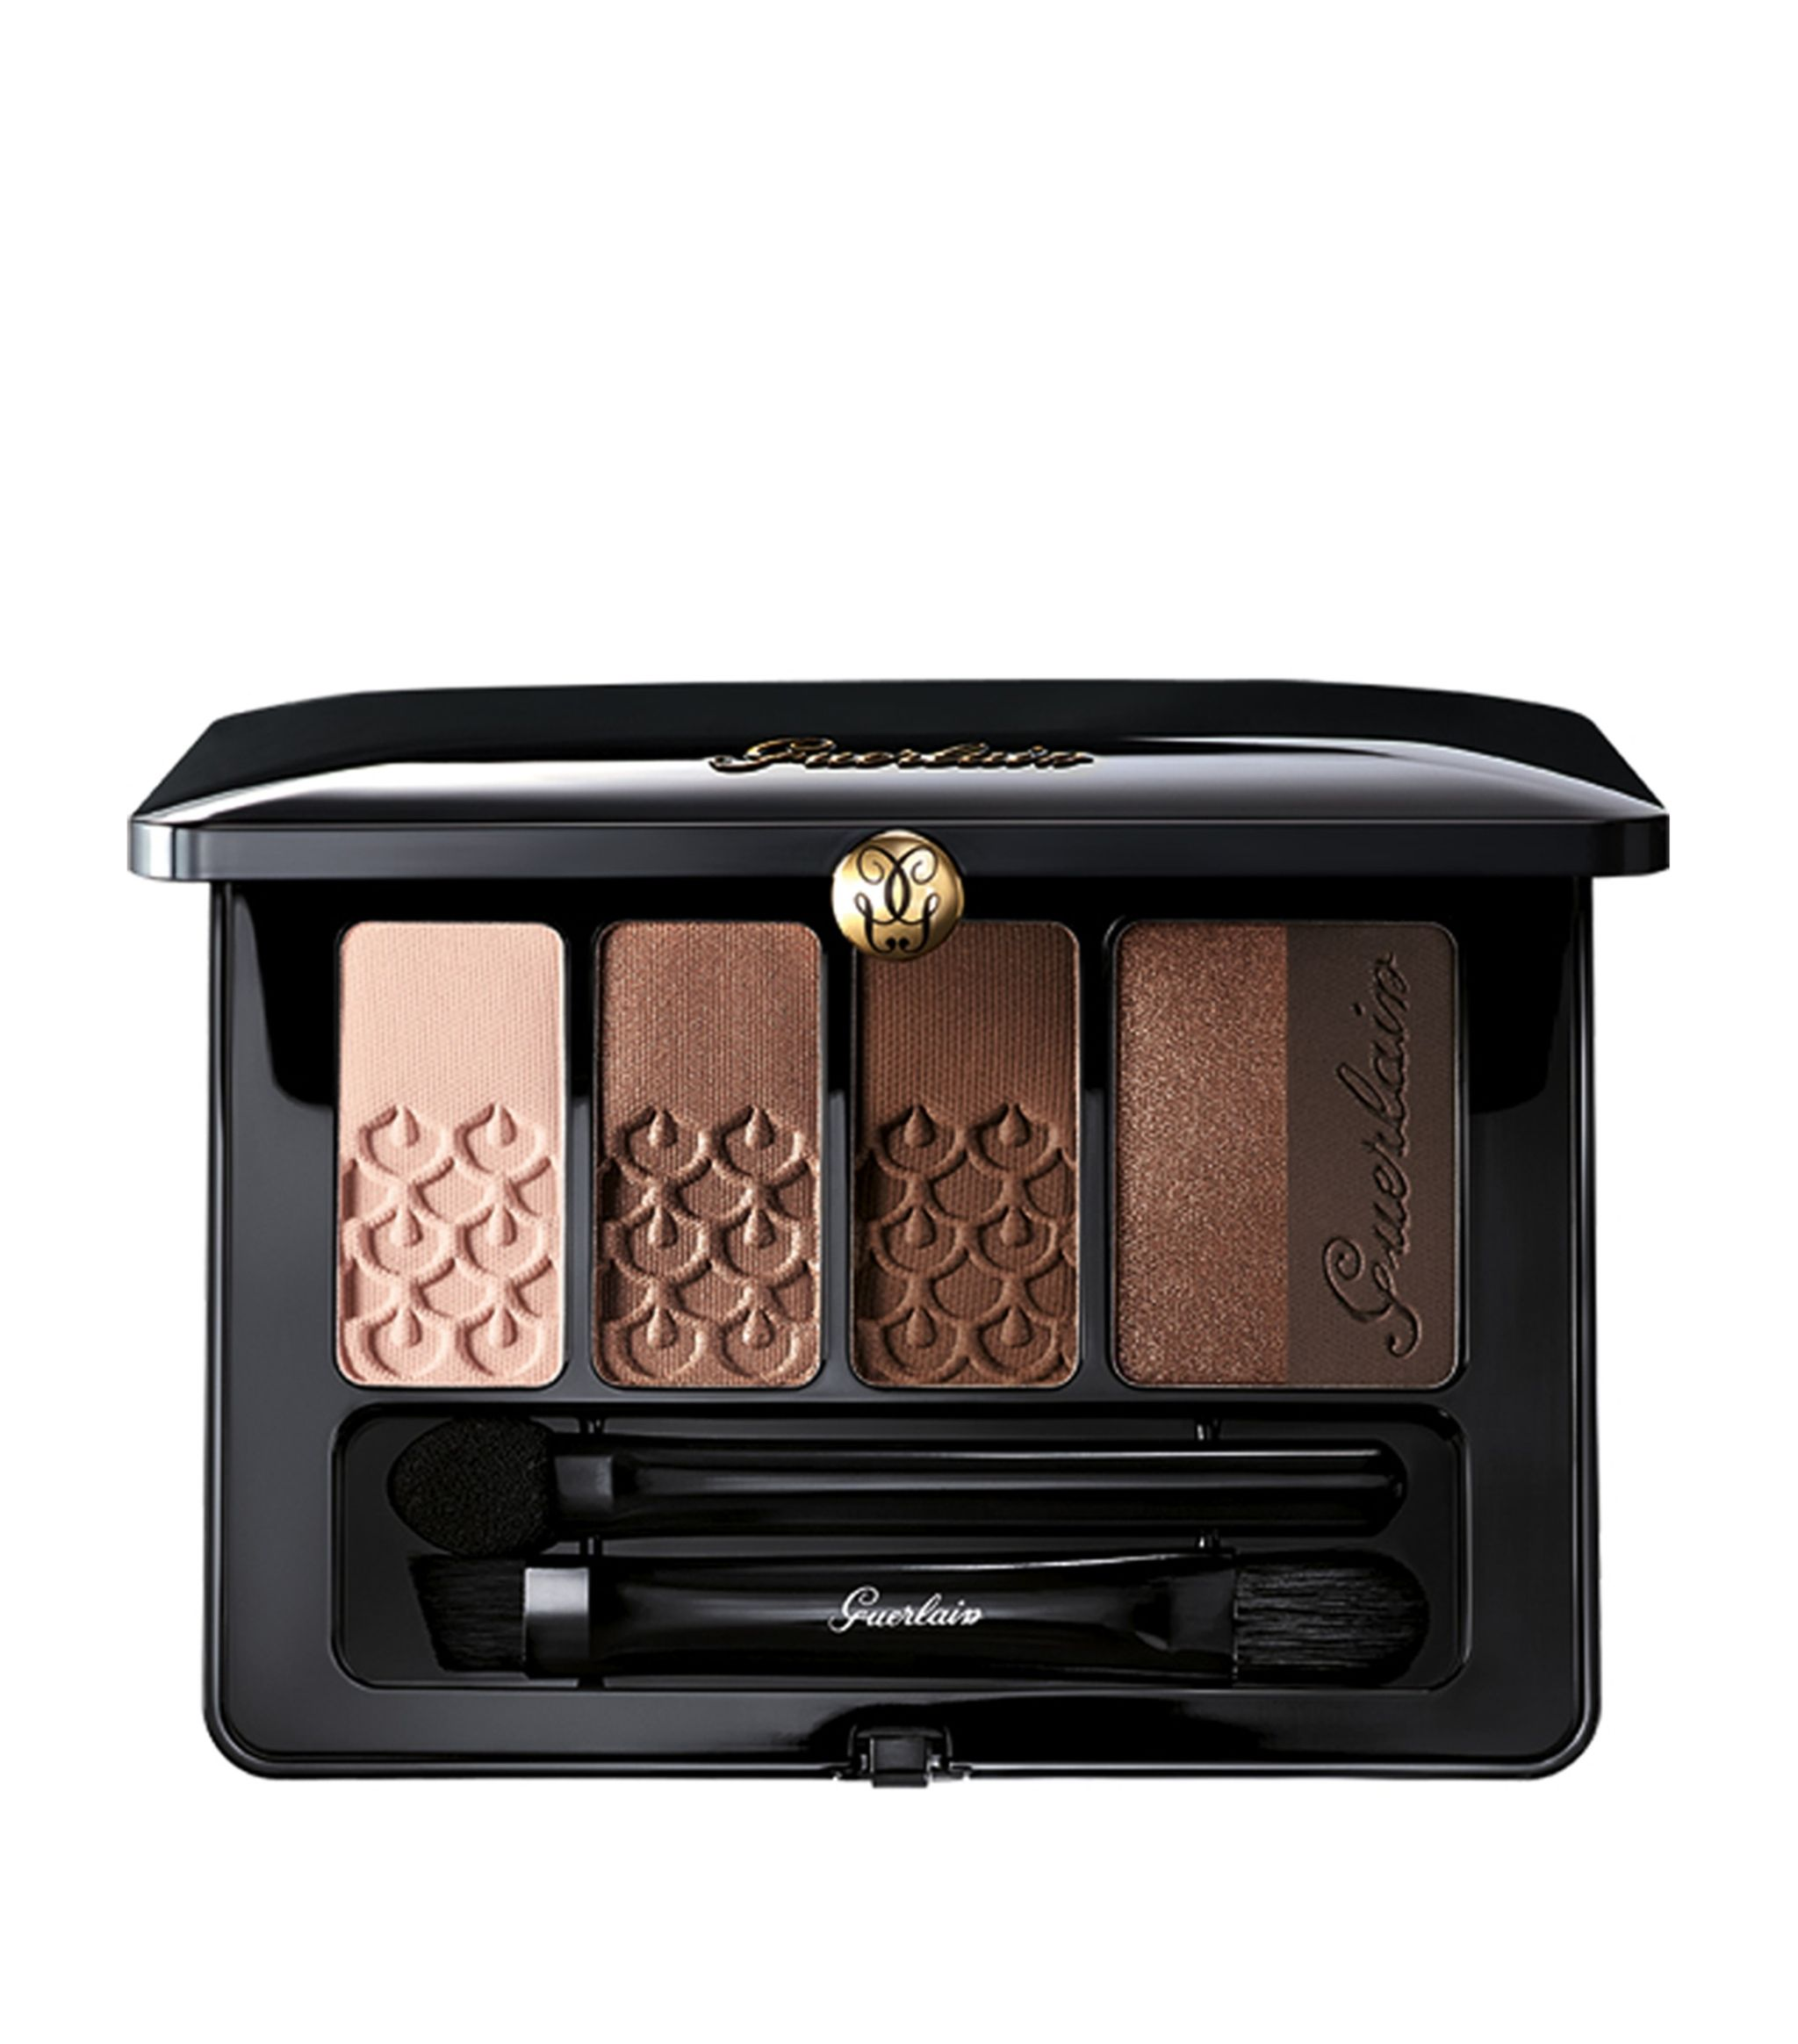 Nude Look Guerlain Palette 5 Couleurs Nude To Smoky Look | Harrods Be